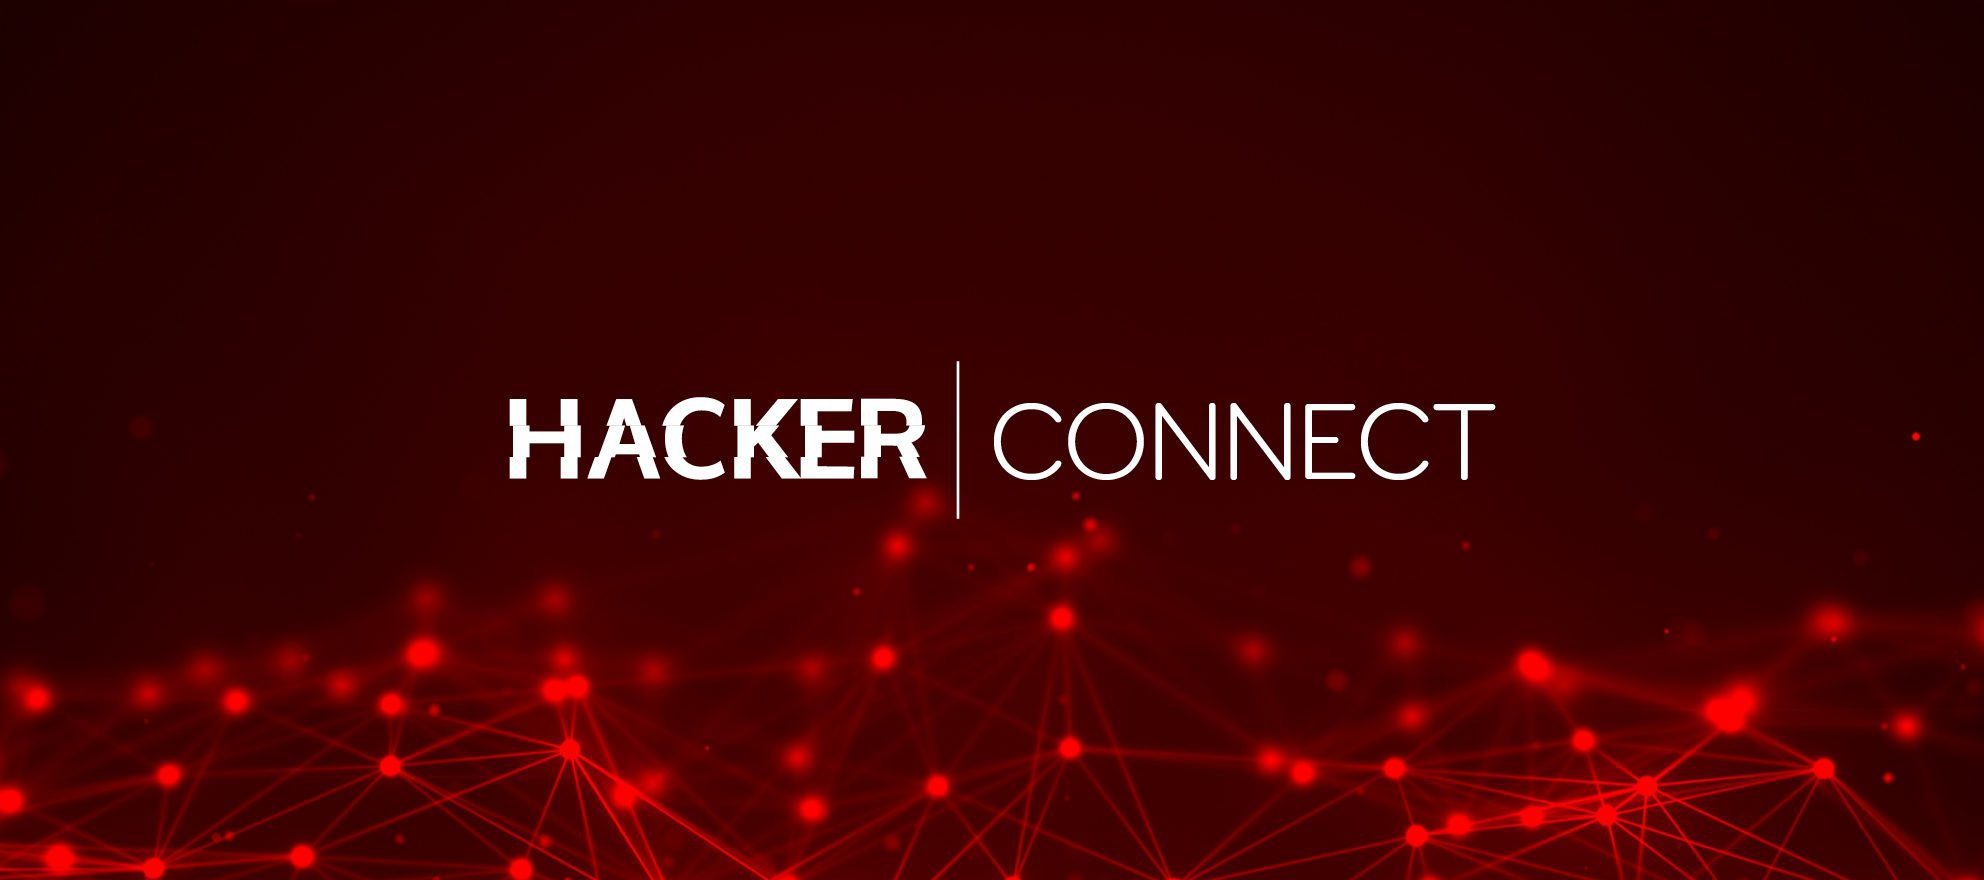 hacker connect greg fischer